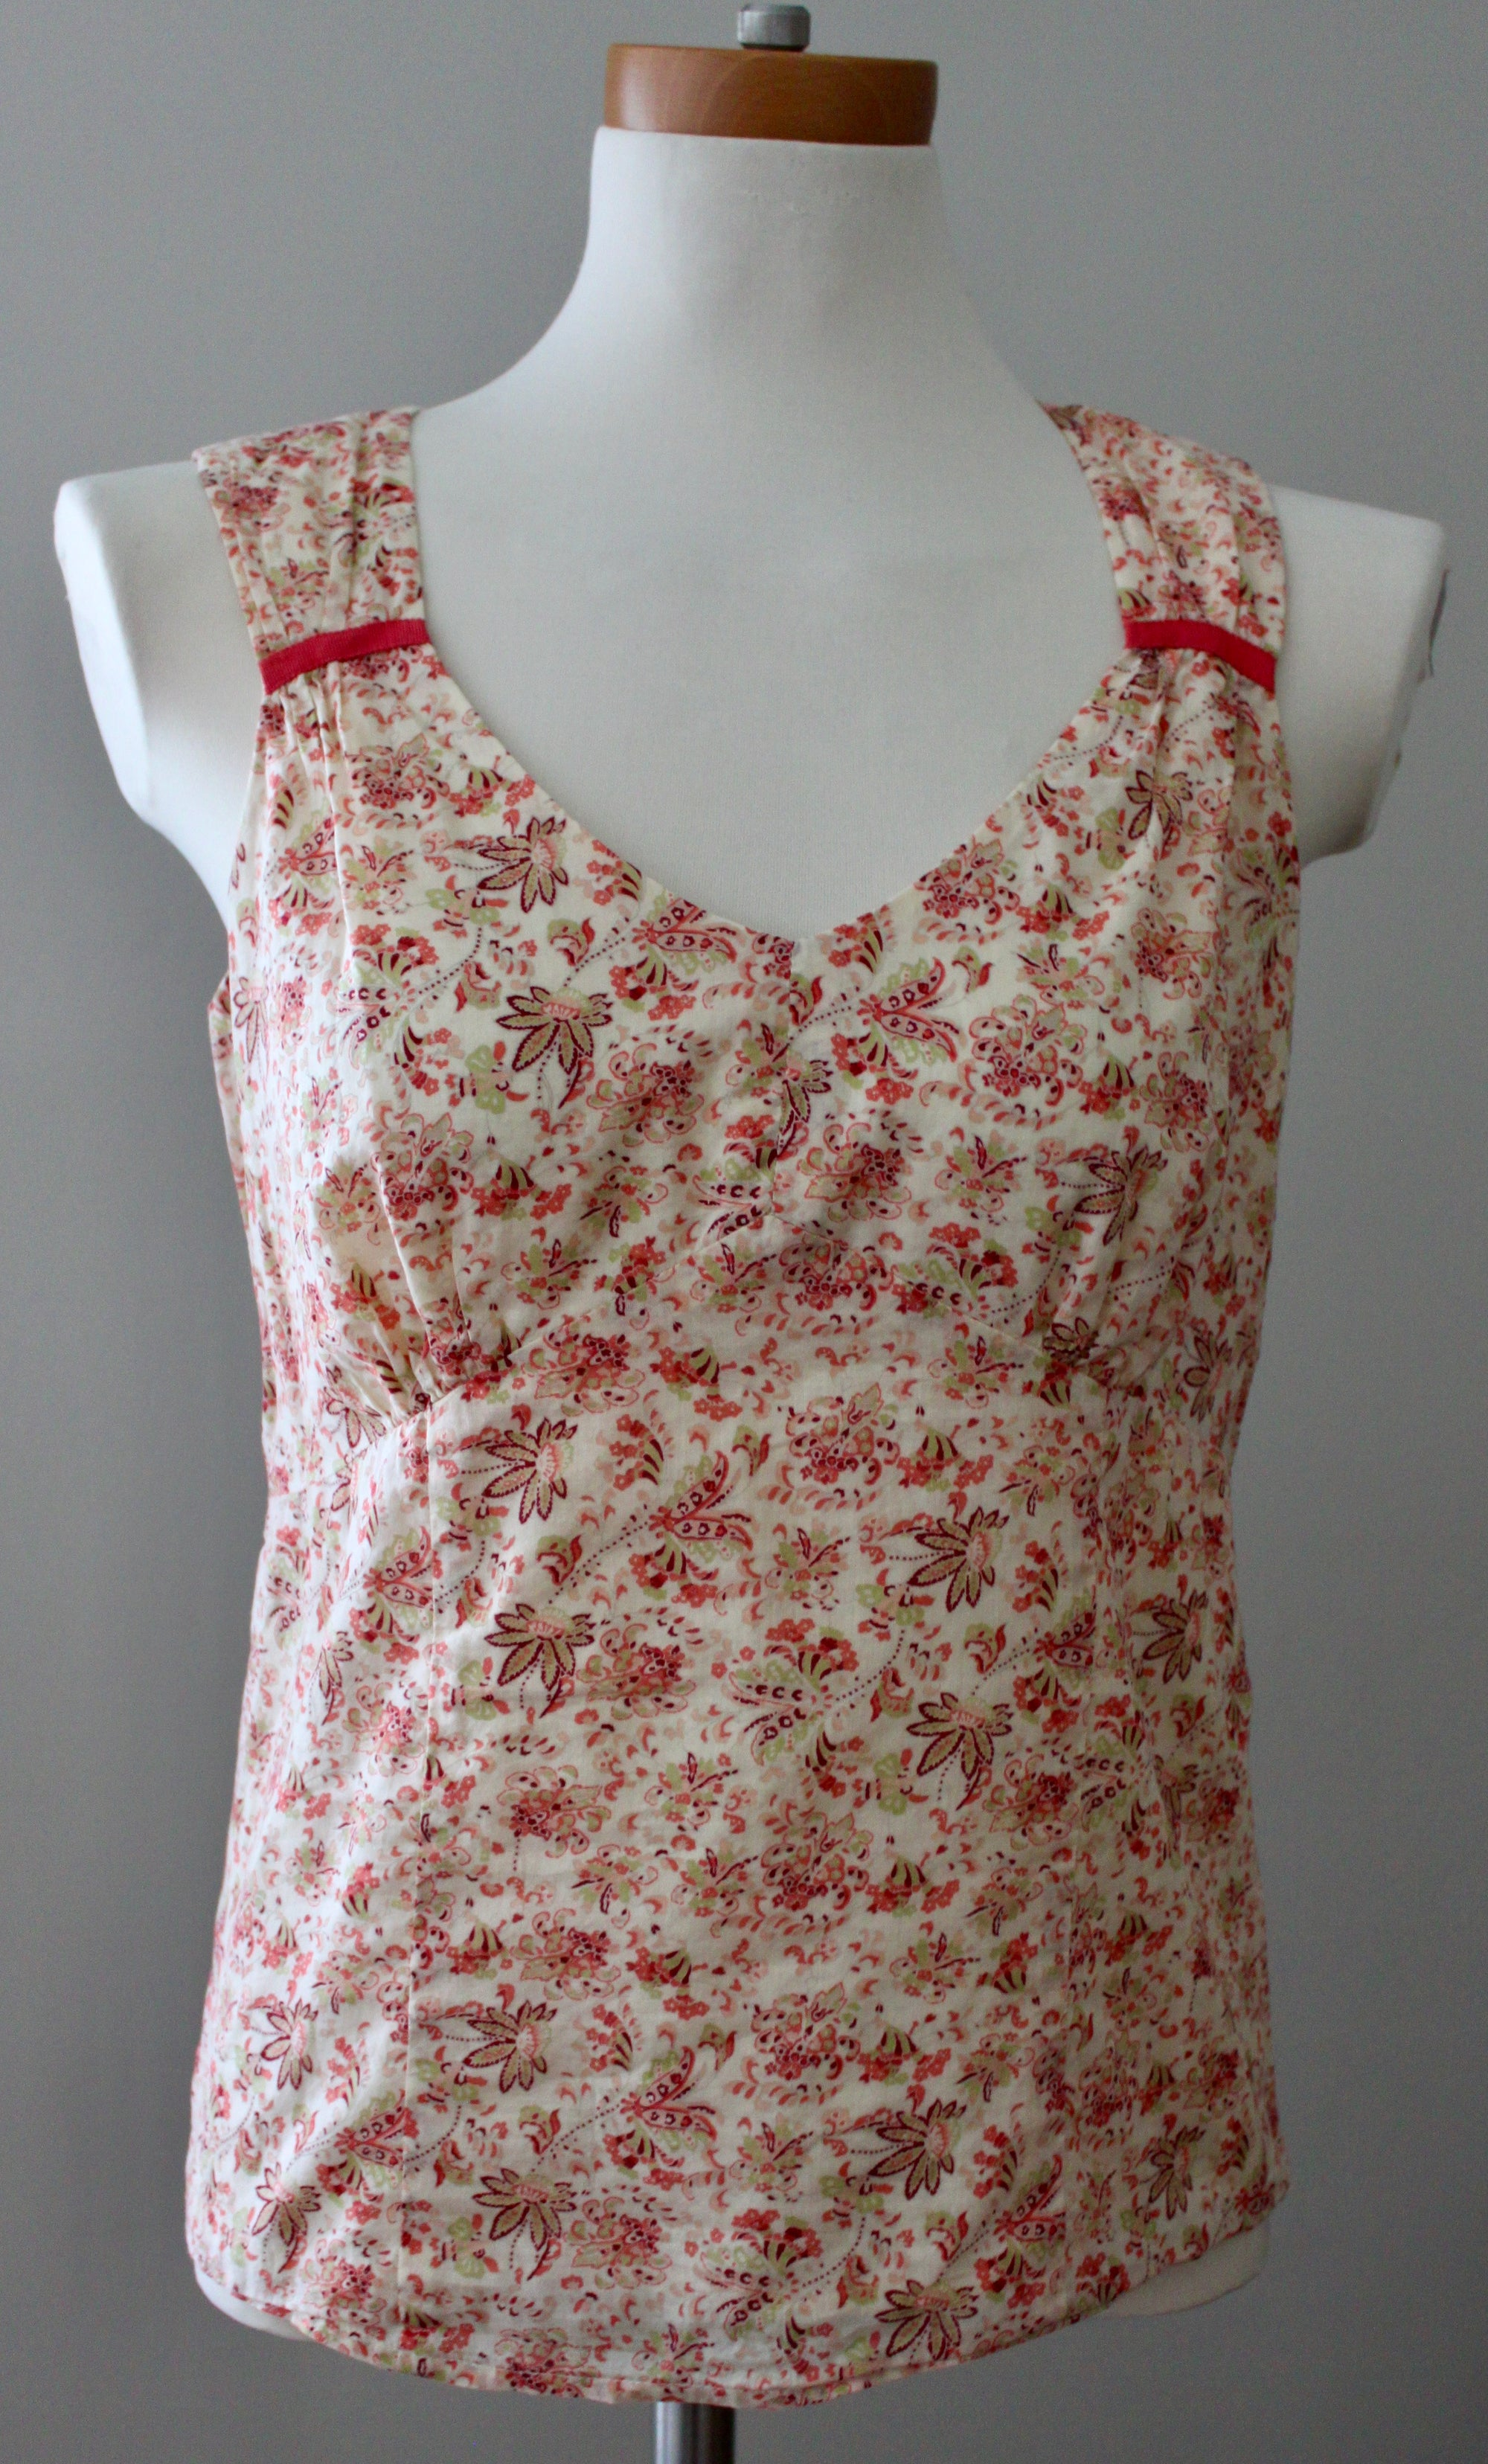 ANN TAYLOR Dark Autumn floral sleeveless blouse